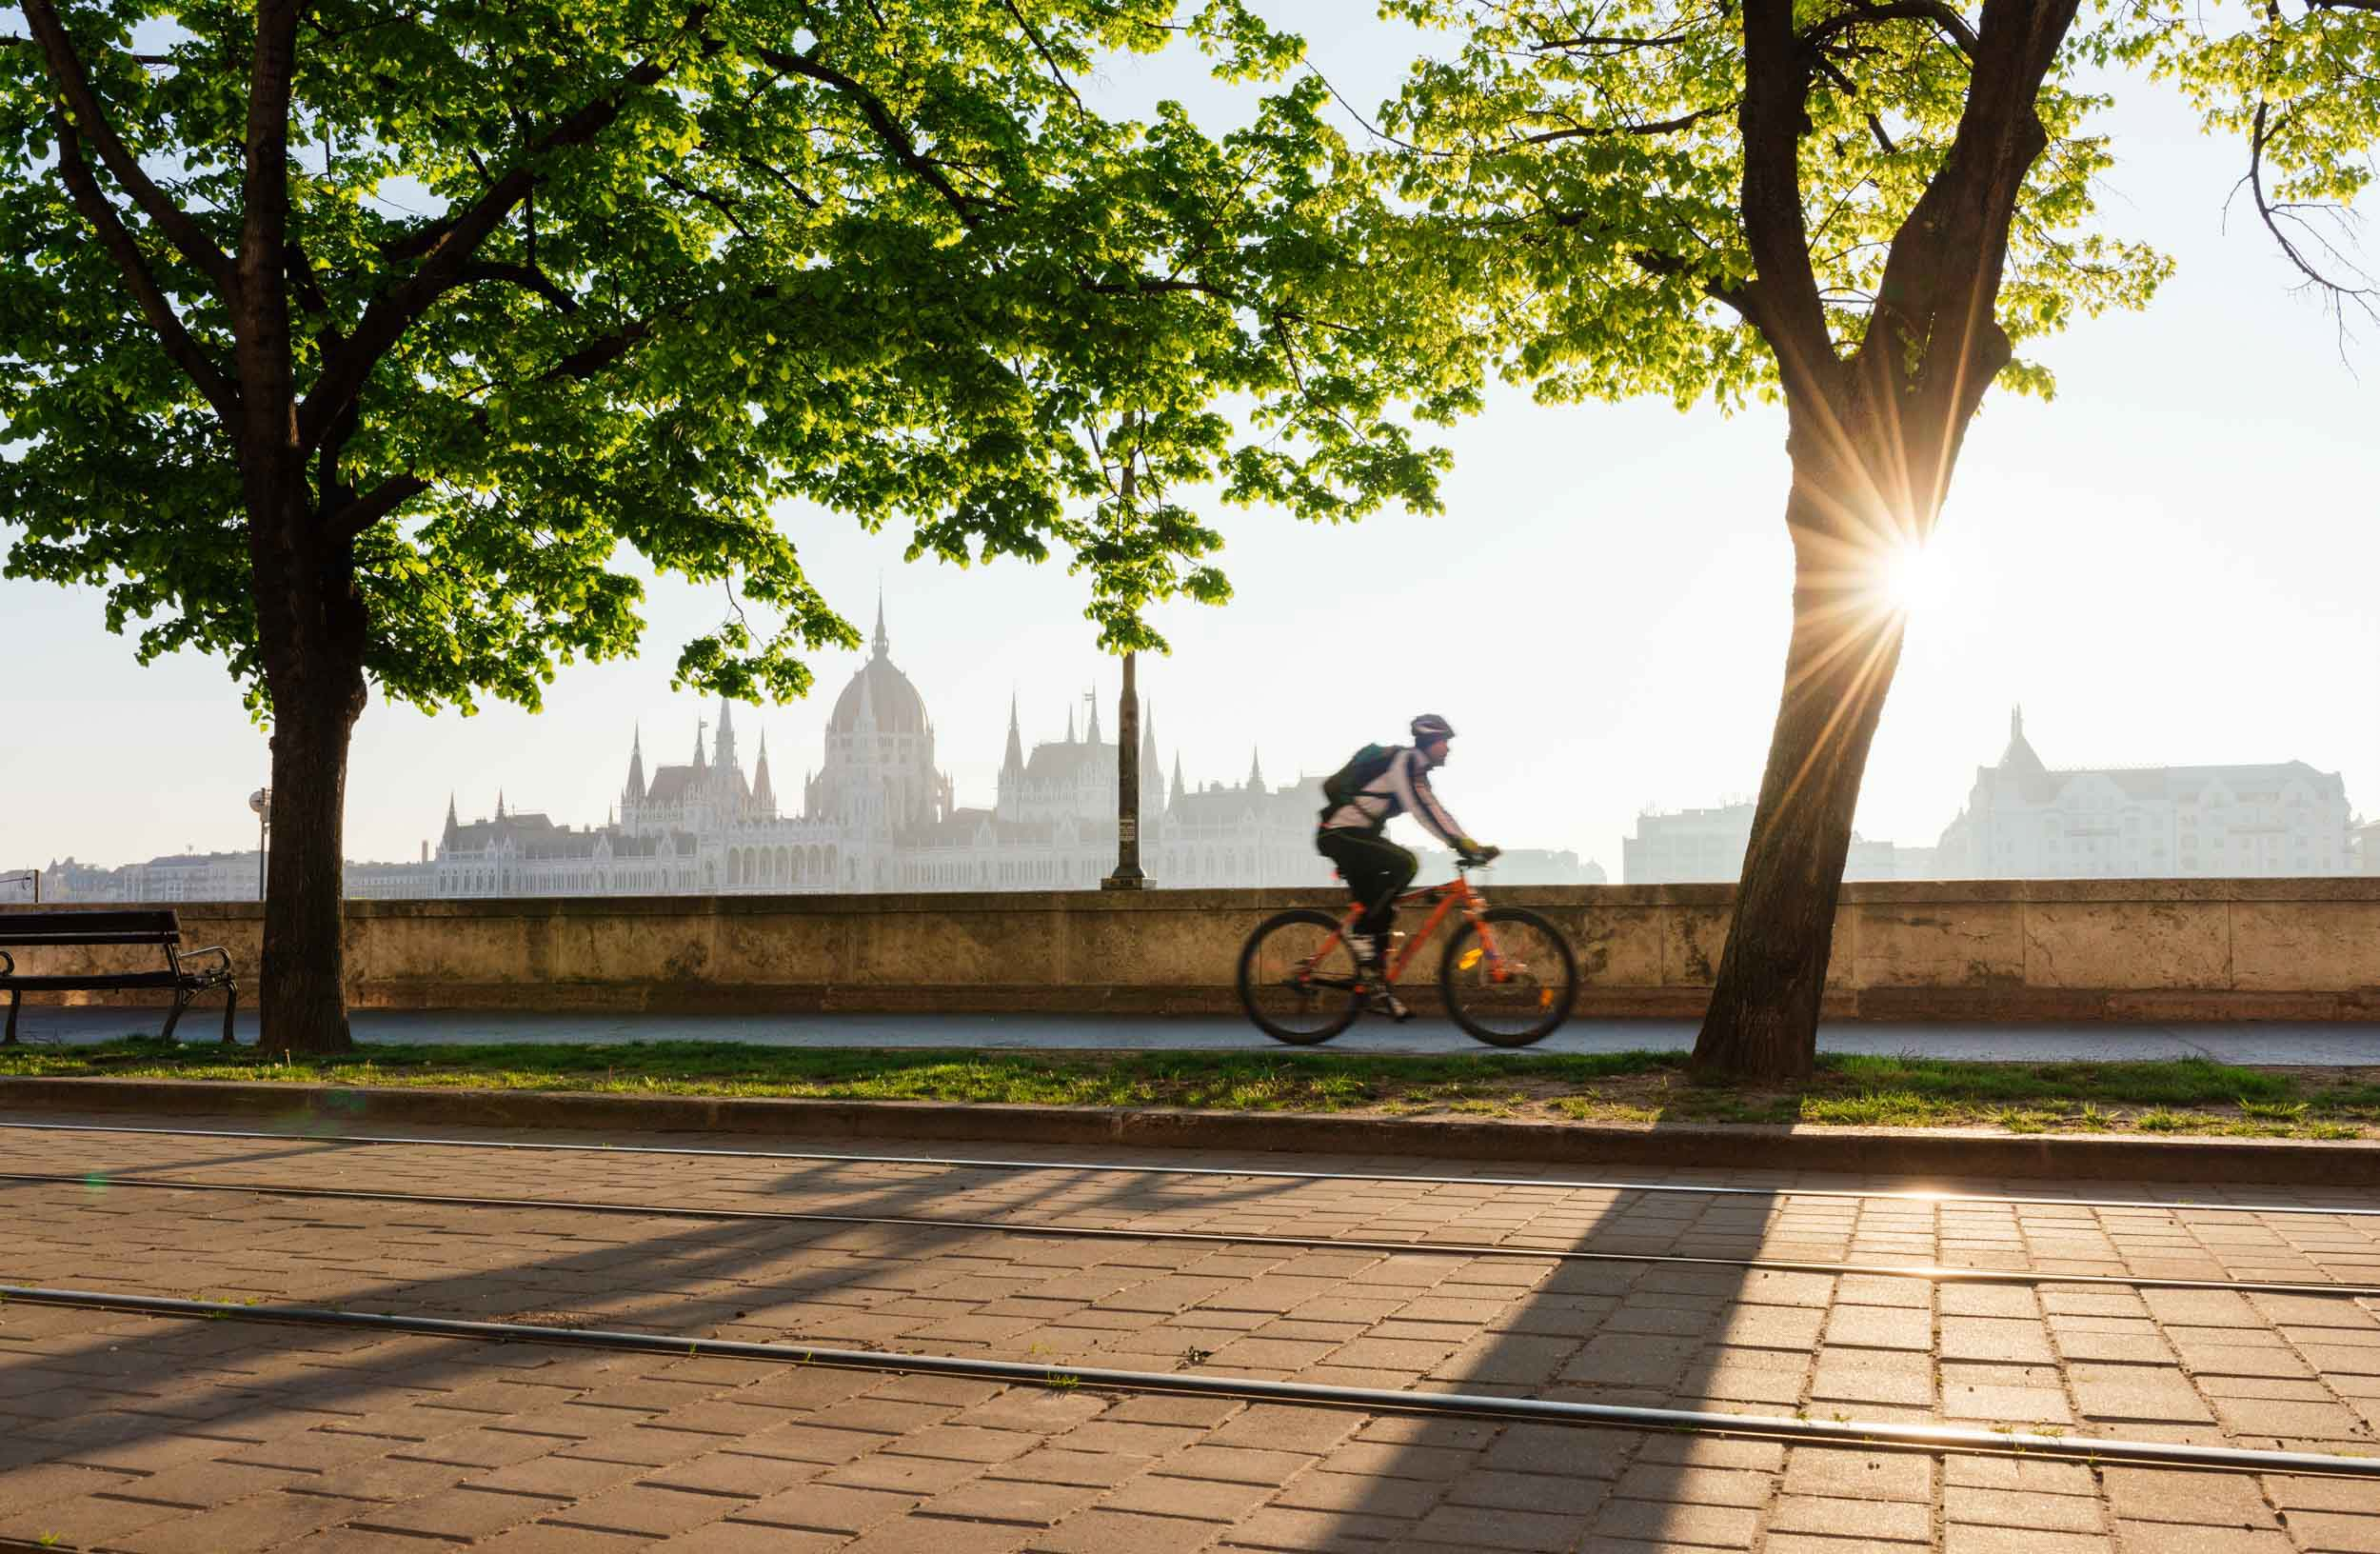 dawn-cycling-road-fishermans-bastion-dawn-sunrise-budapest-hungary-travel